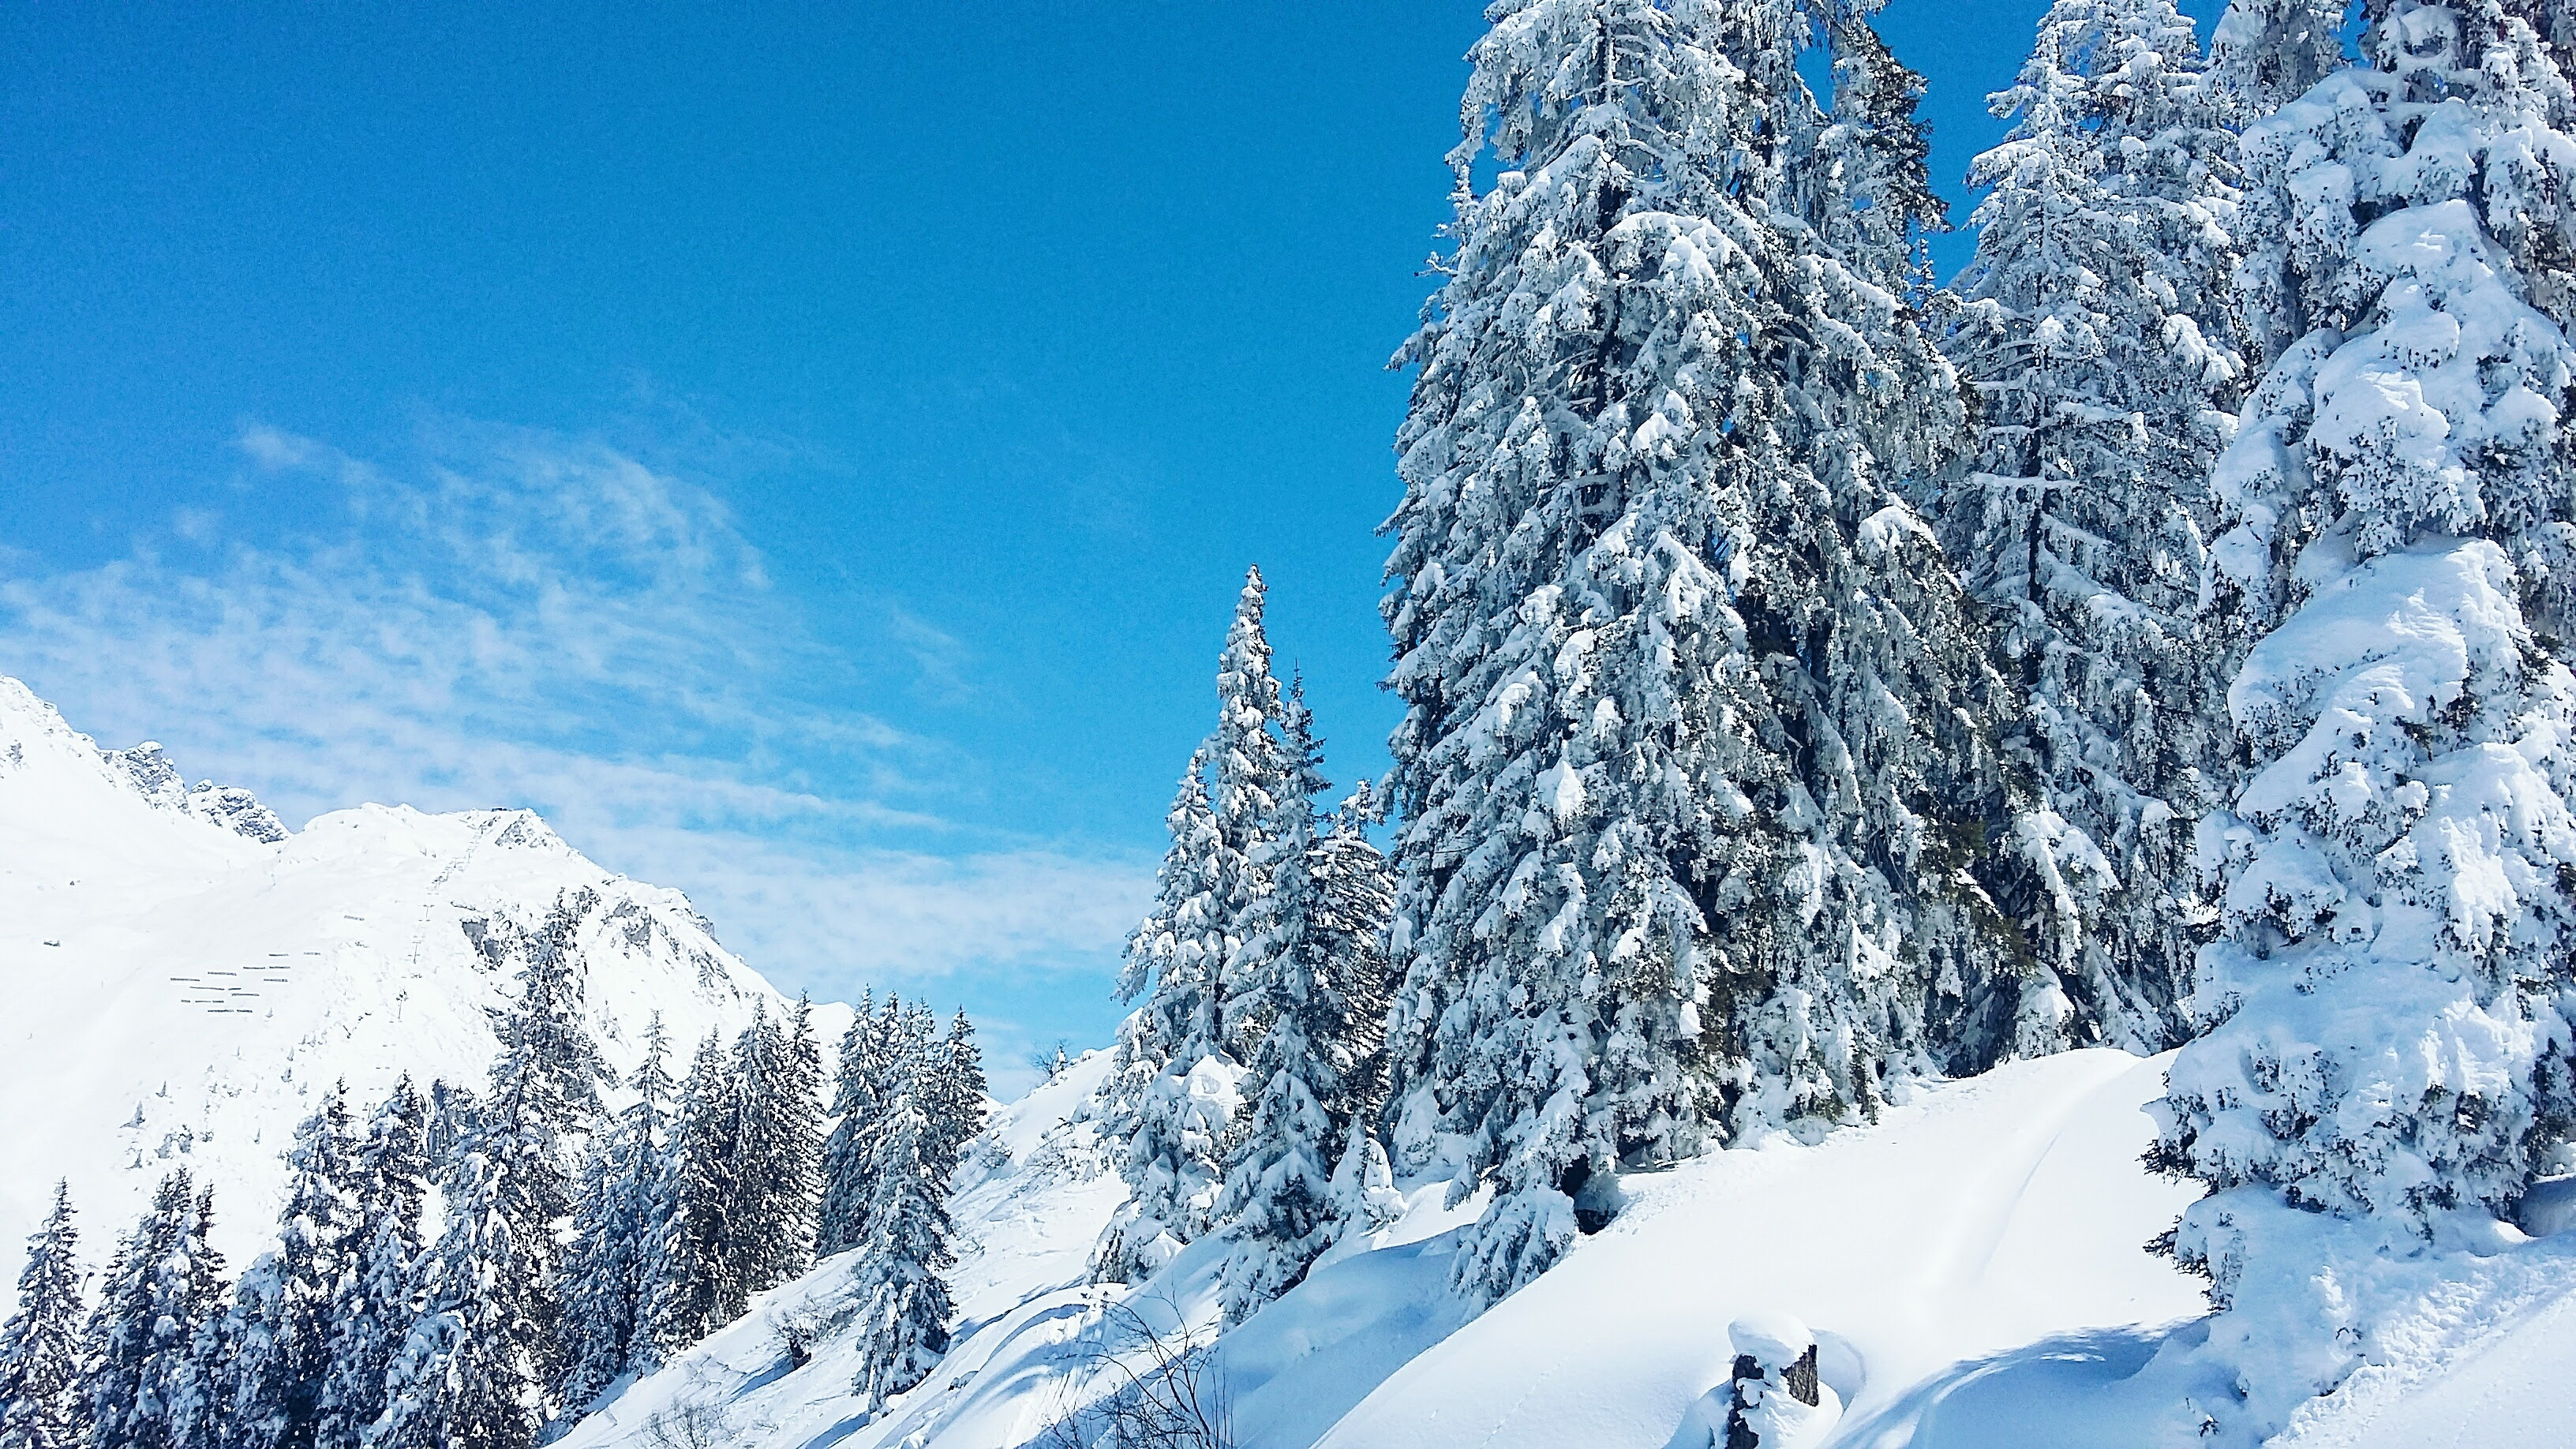 snowy mountains for skiing in Arlberg Austria